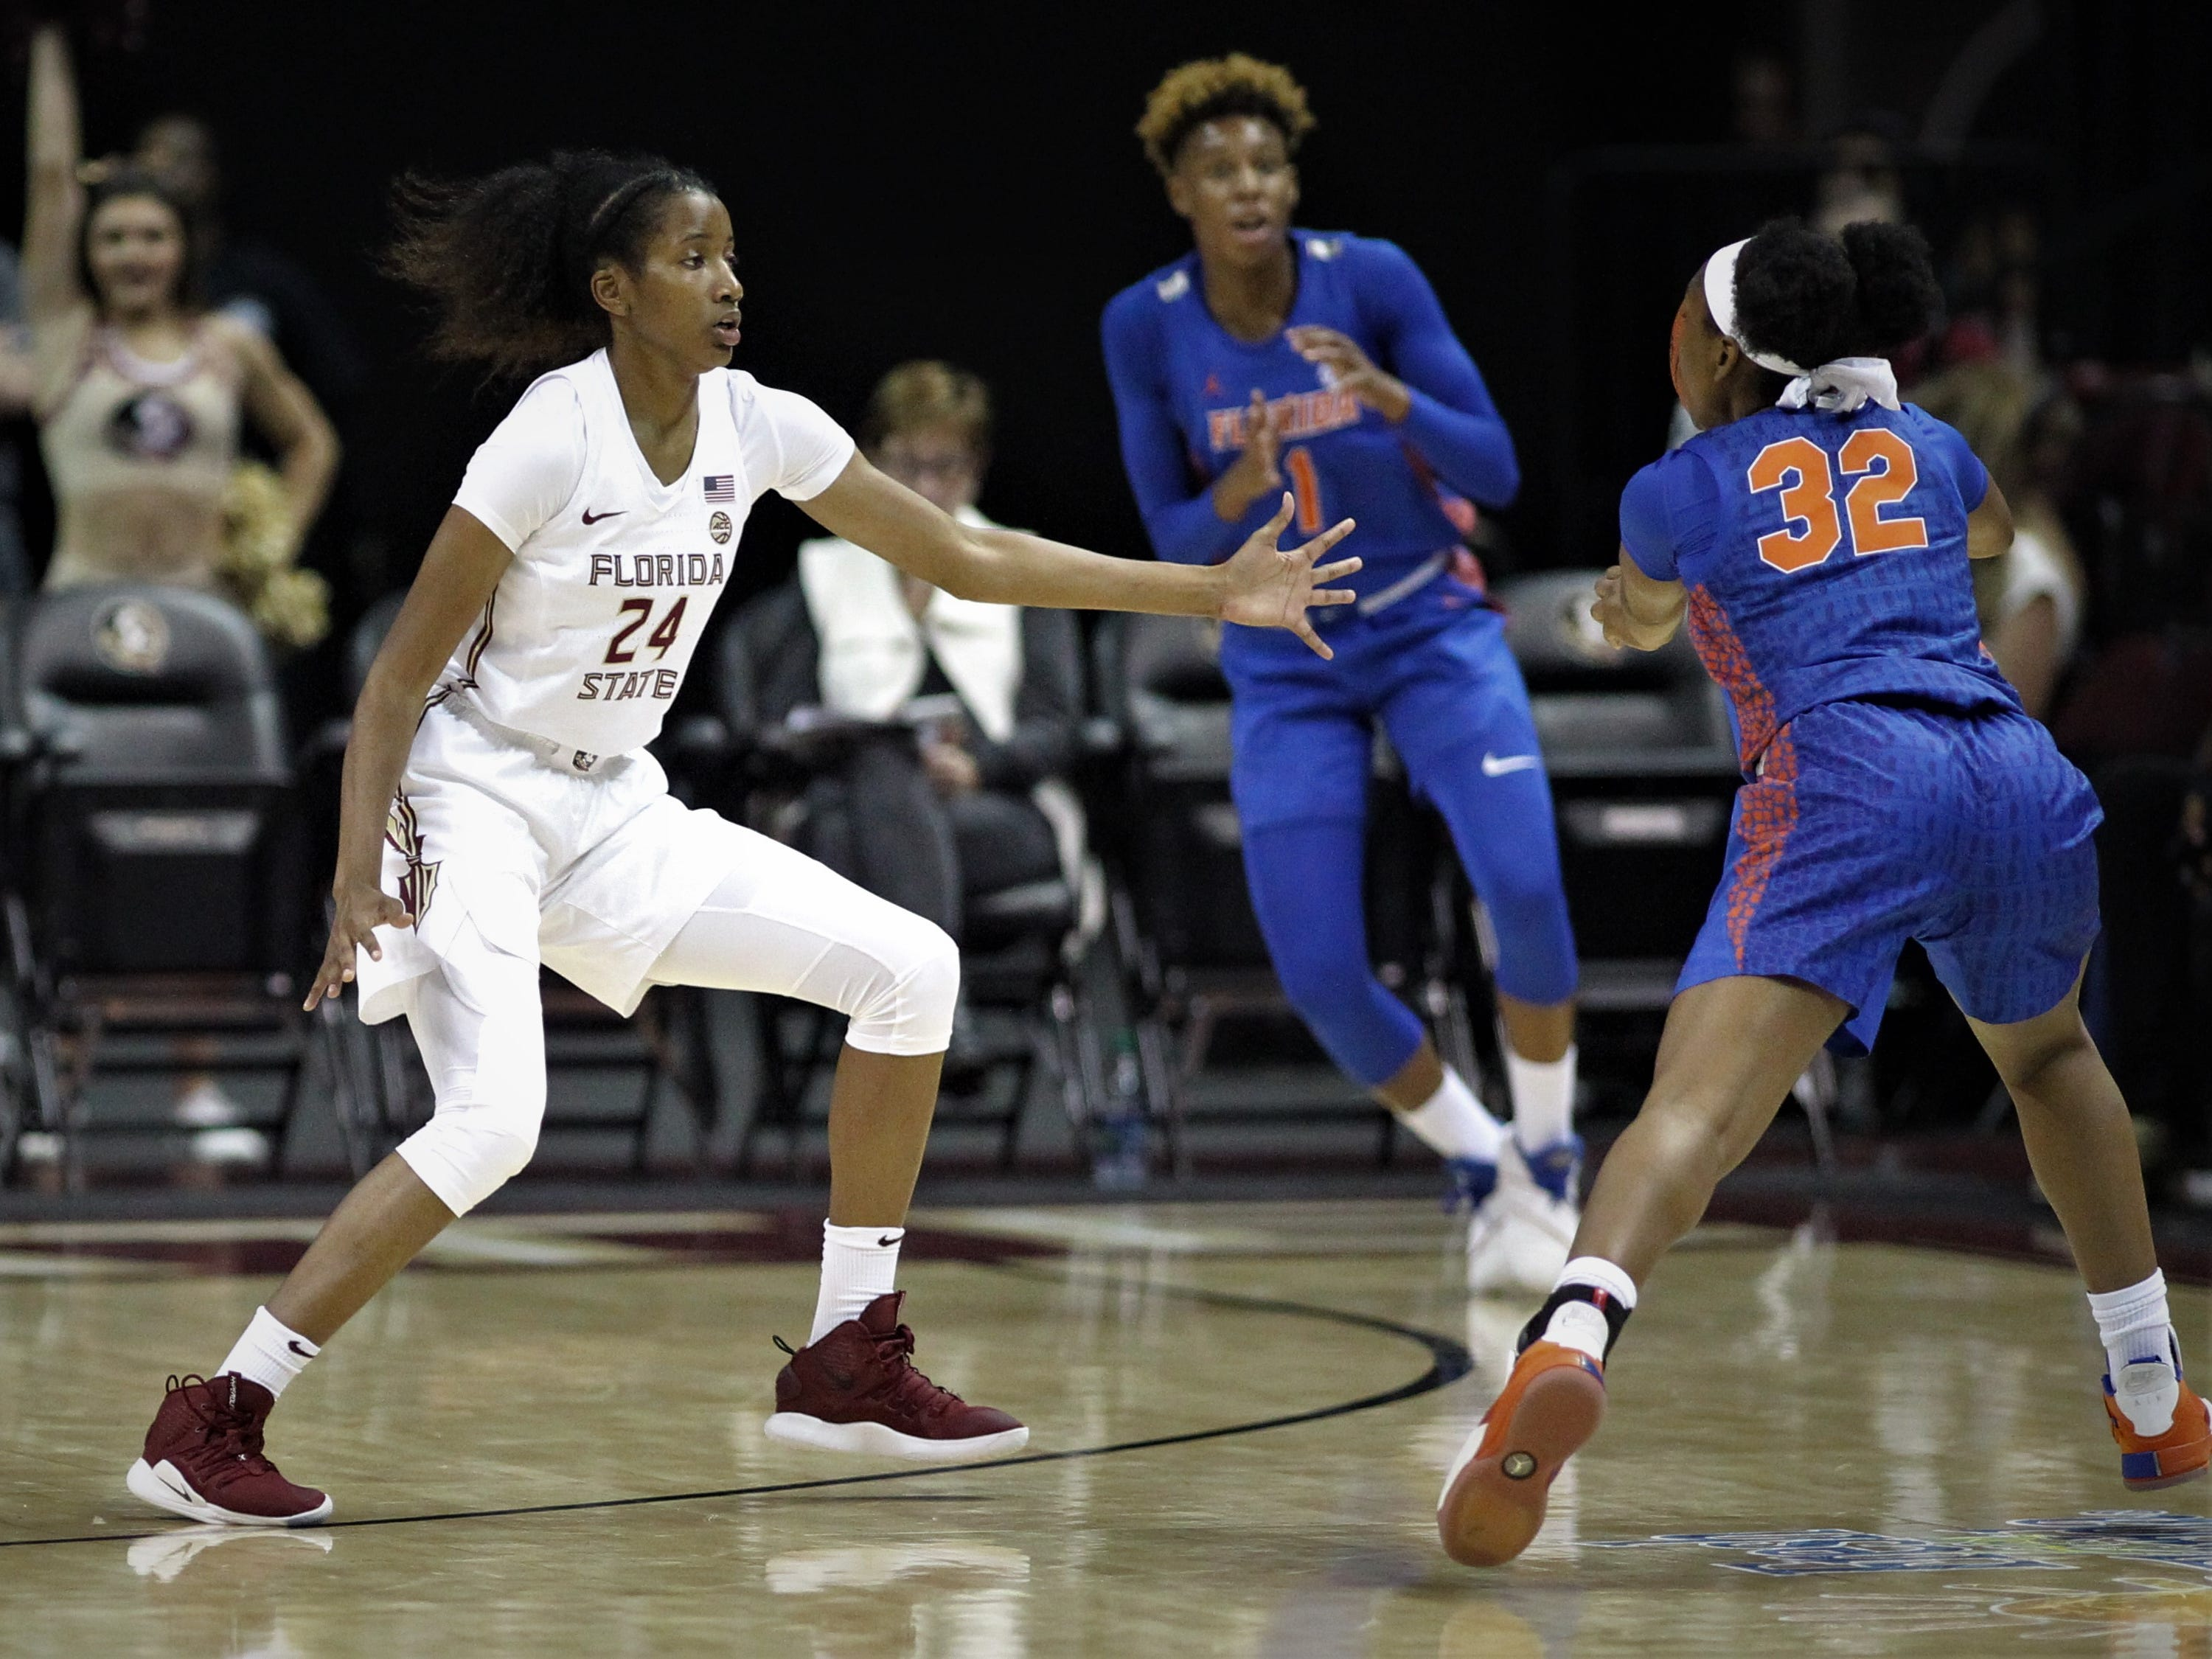 Florida State freshman Morgan Jones guards the perimeter during the first half of the Seminoles' game against Florida at the Tucker Civic Center on Nov. 11, 2018.